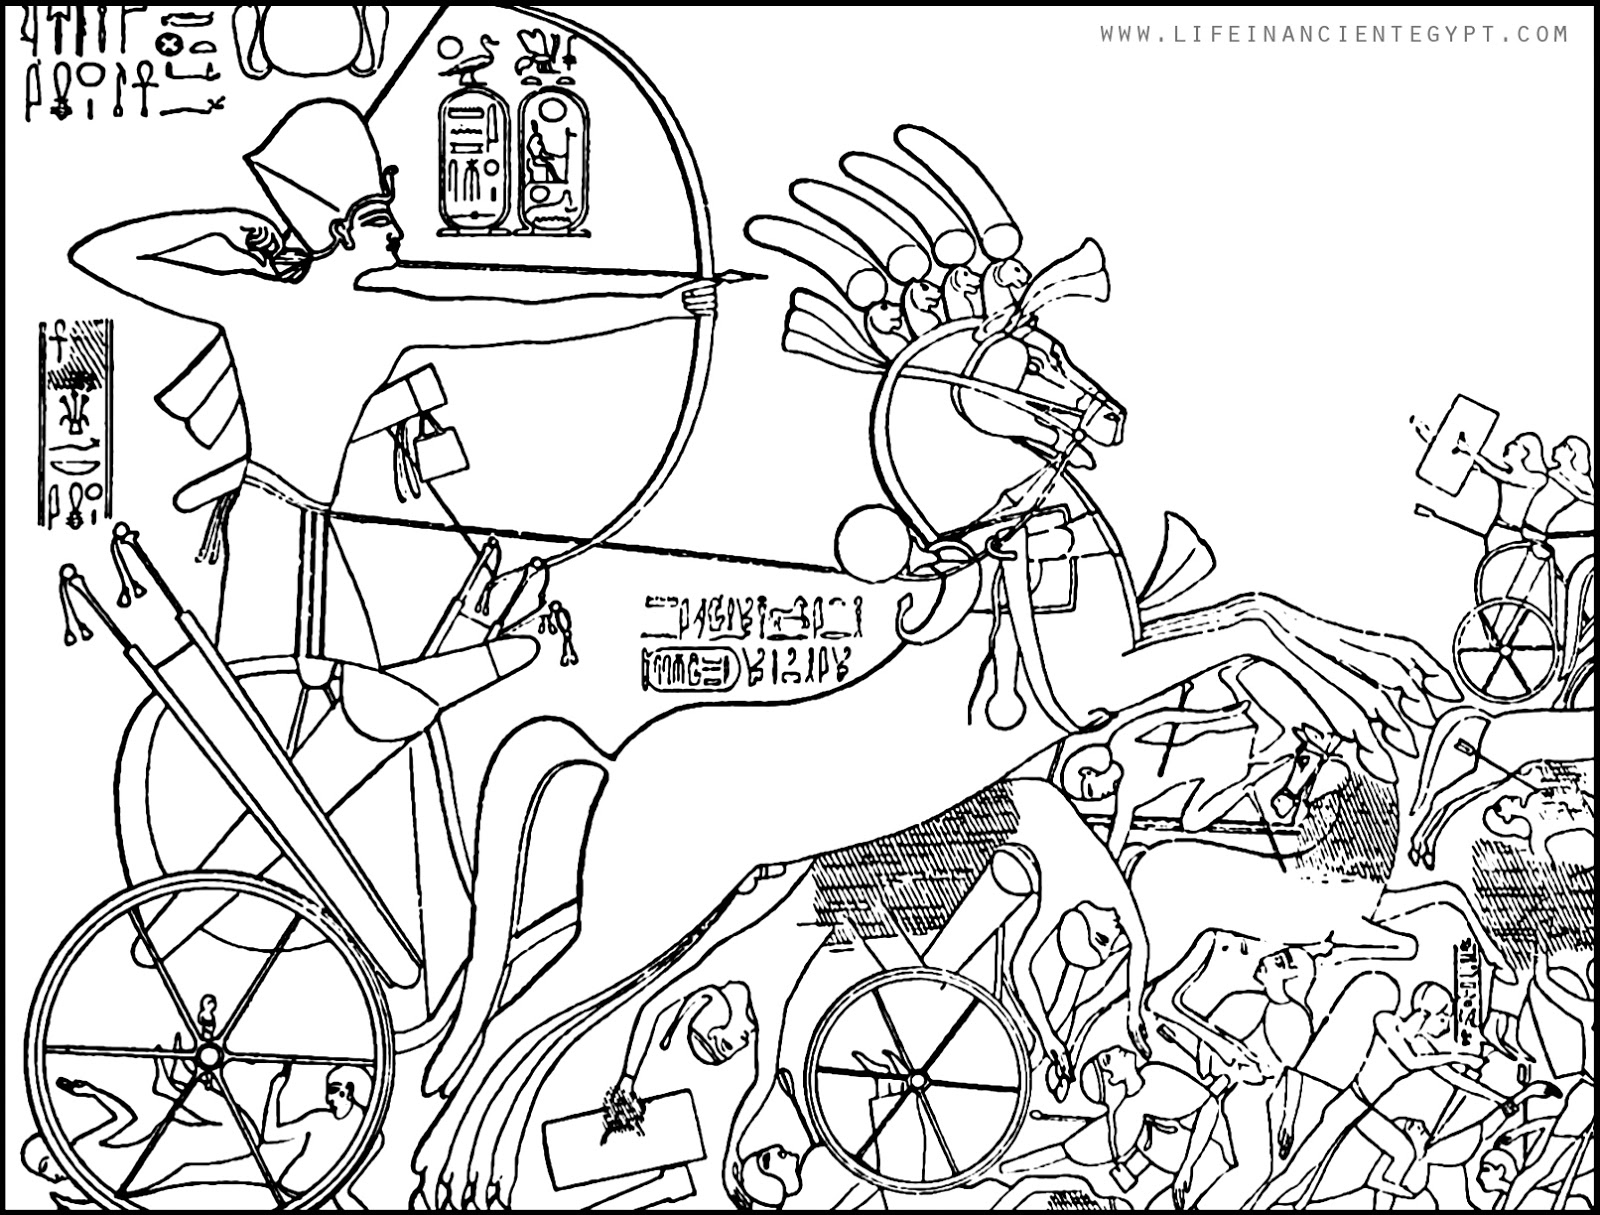 Ancient Egypt Coloring Page Battle War Scene With Chariot And Archers